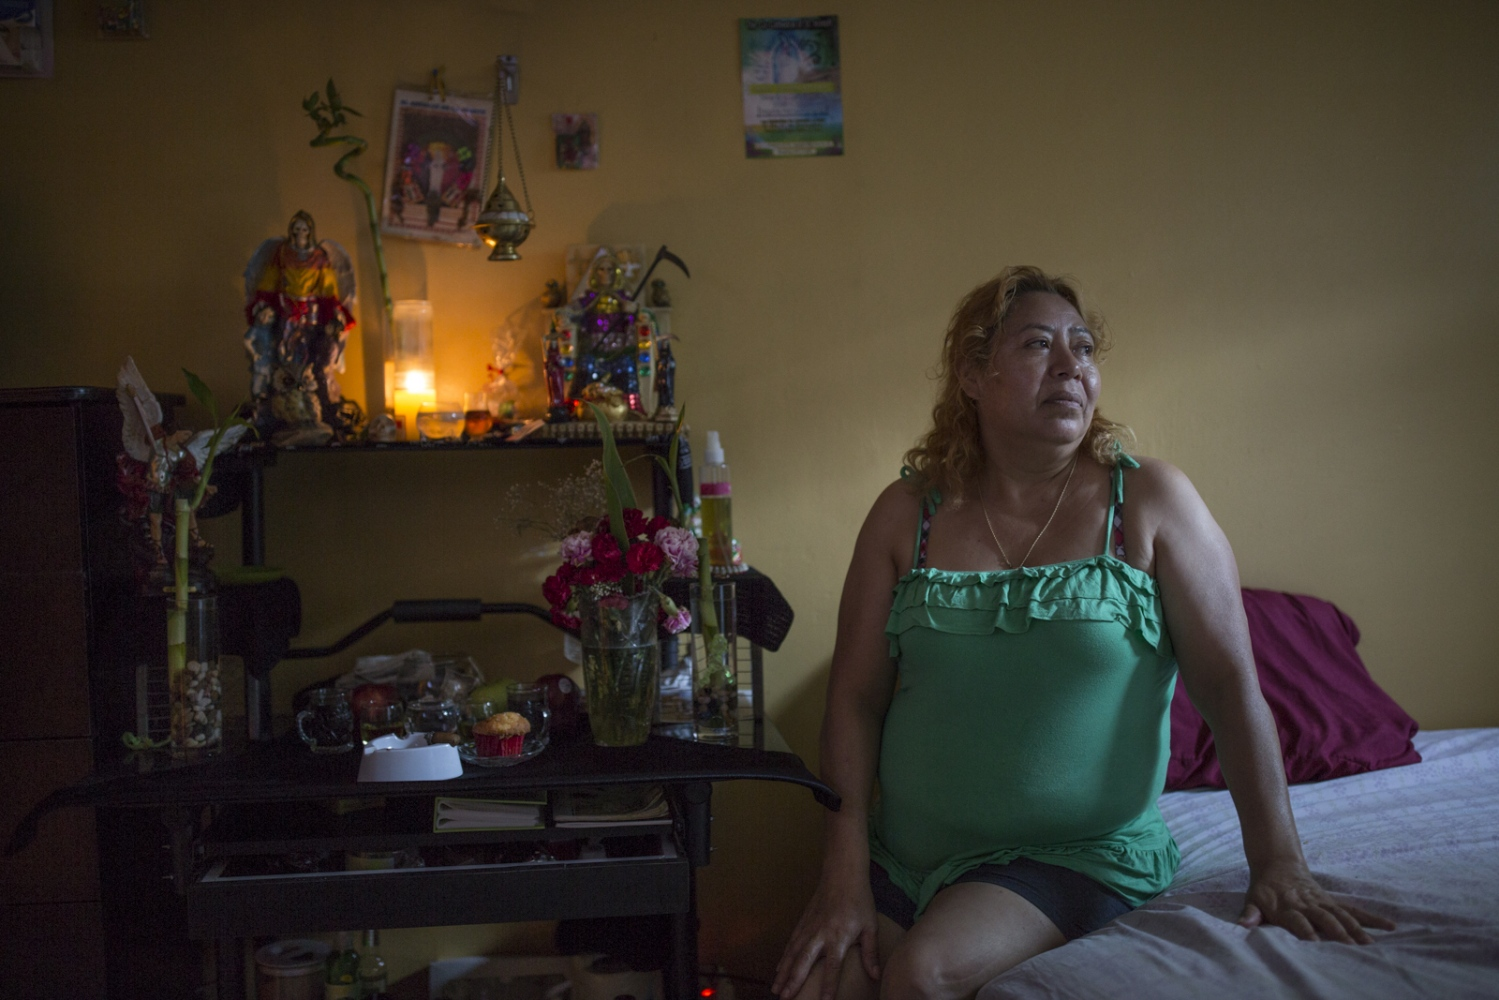 Santa Muerte devotee Conny Espinosa sits next to a Santa Muerte altar in her bedroom in Brooklyn, New York. Espinoza is an immigrant from Puebla, Mexico,